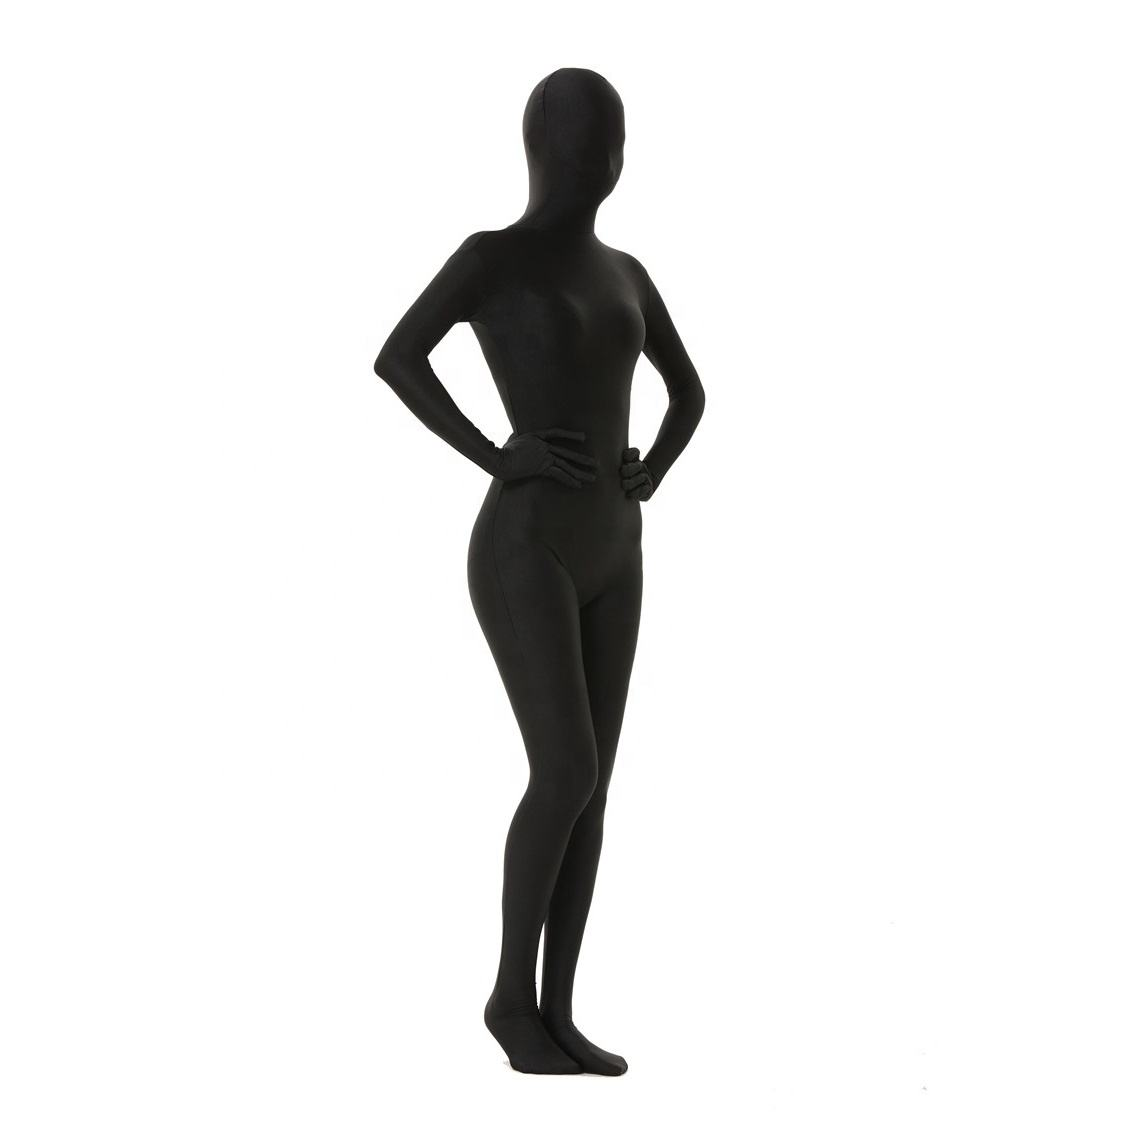 In-stock Women Men Unisex Party Cosplay Black Spandex Whole Bodysuits Full Body Suit Halloween Costume Zentai Catsuit For Sale